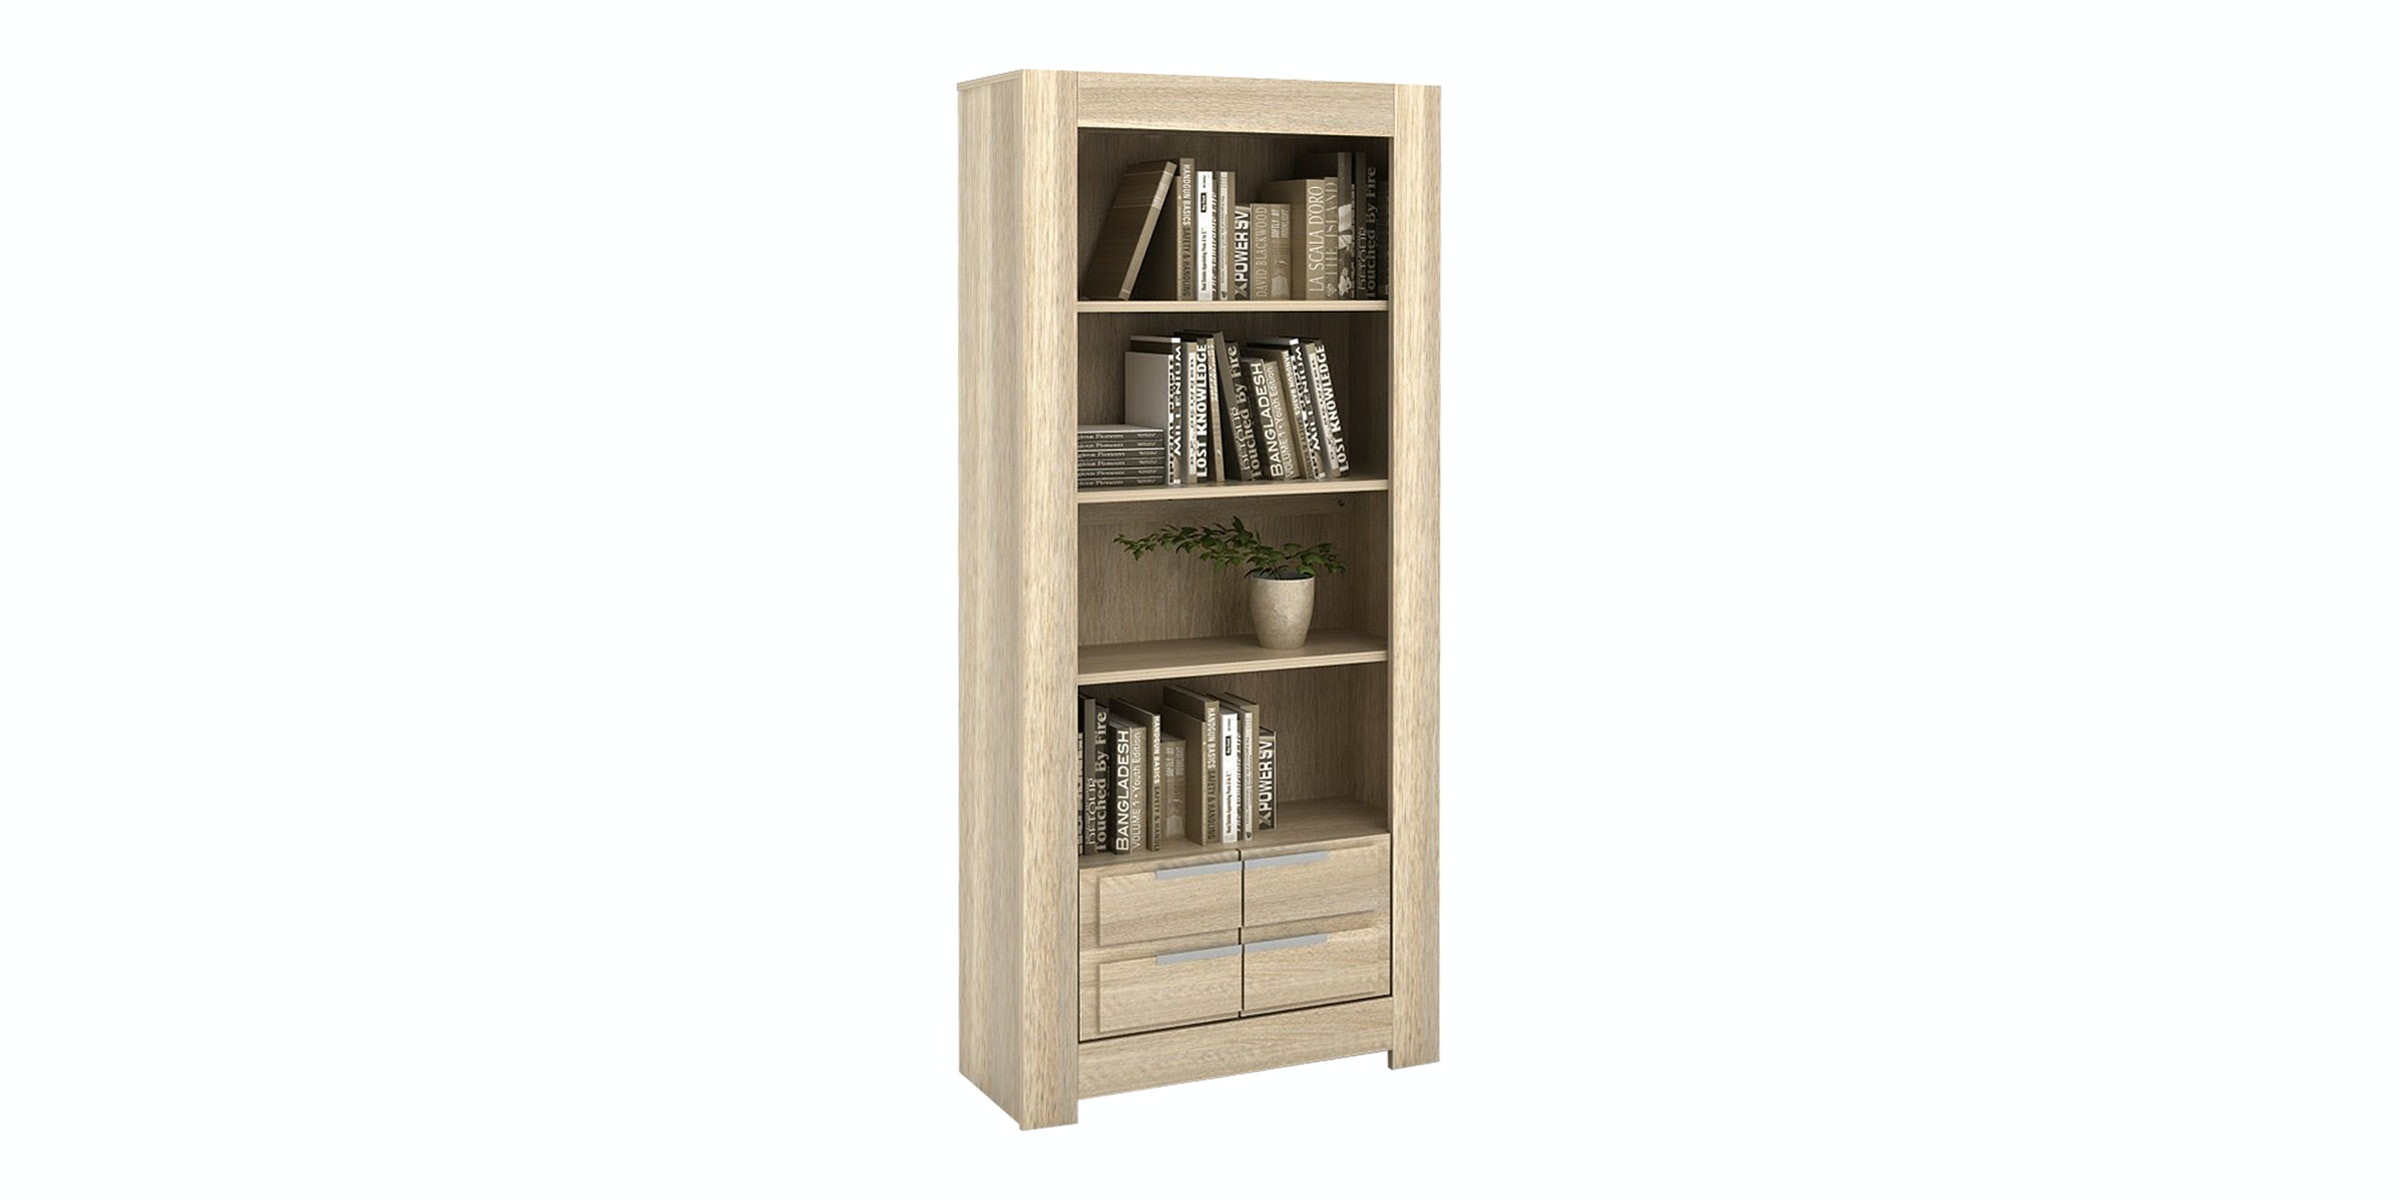 Pro Design Oregon Rak Buku - Light Oak